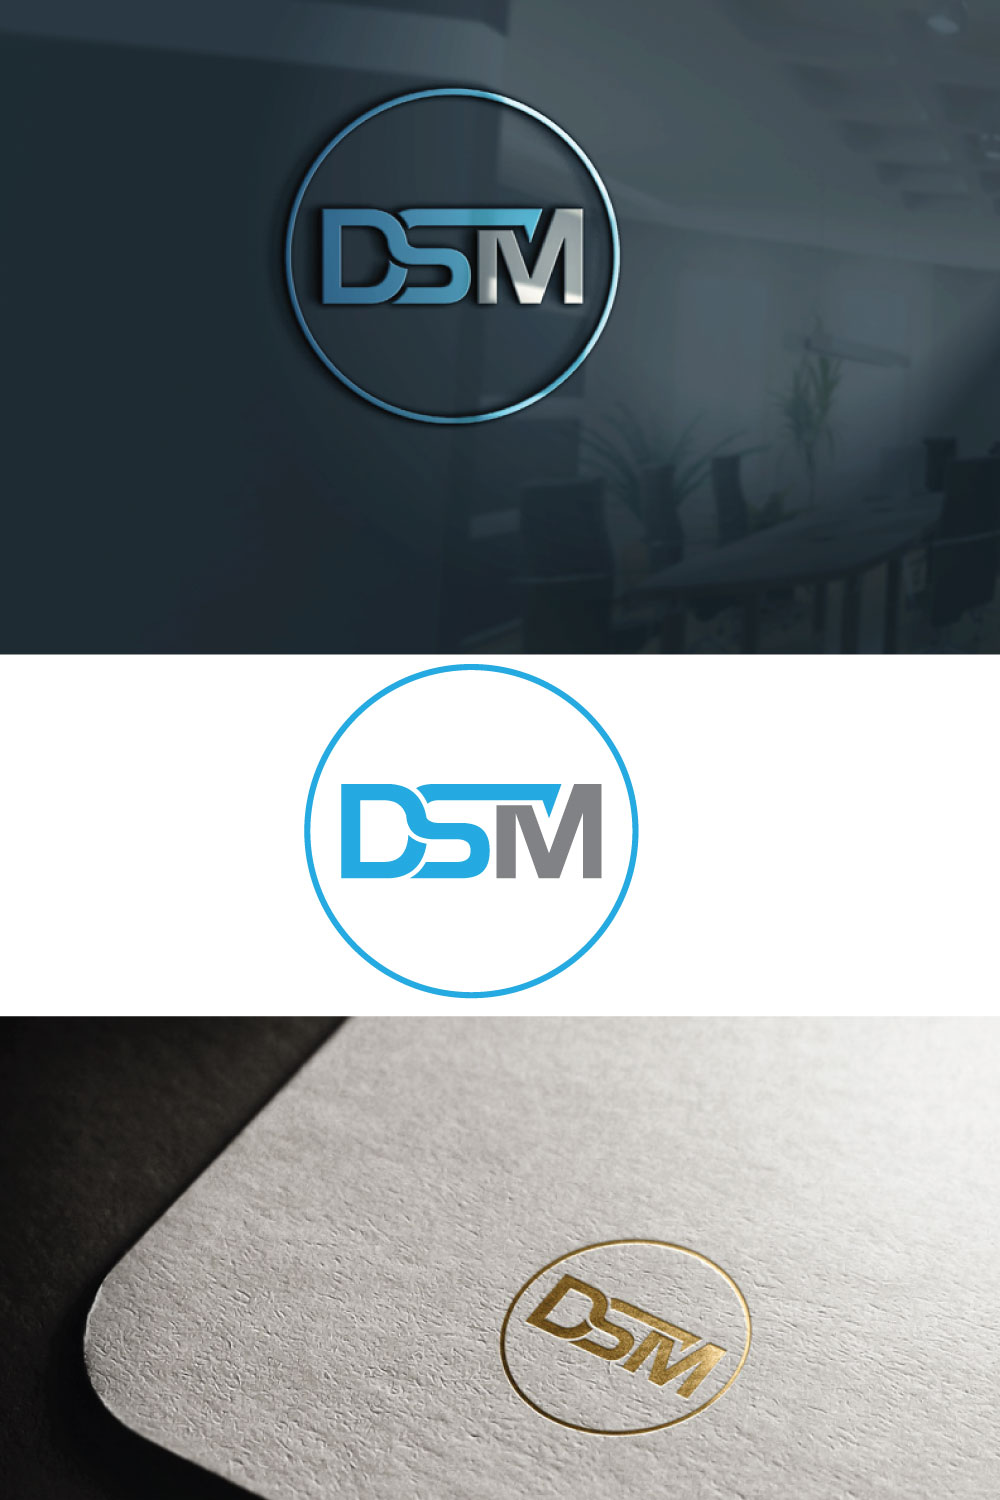 Möbel Ad Logo Design For Dsm Dito Shopping MÖbel By Salmanfarsi055 Design